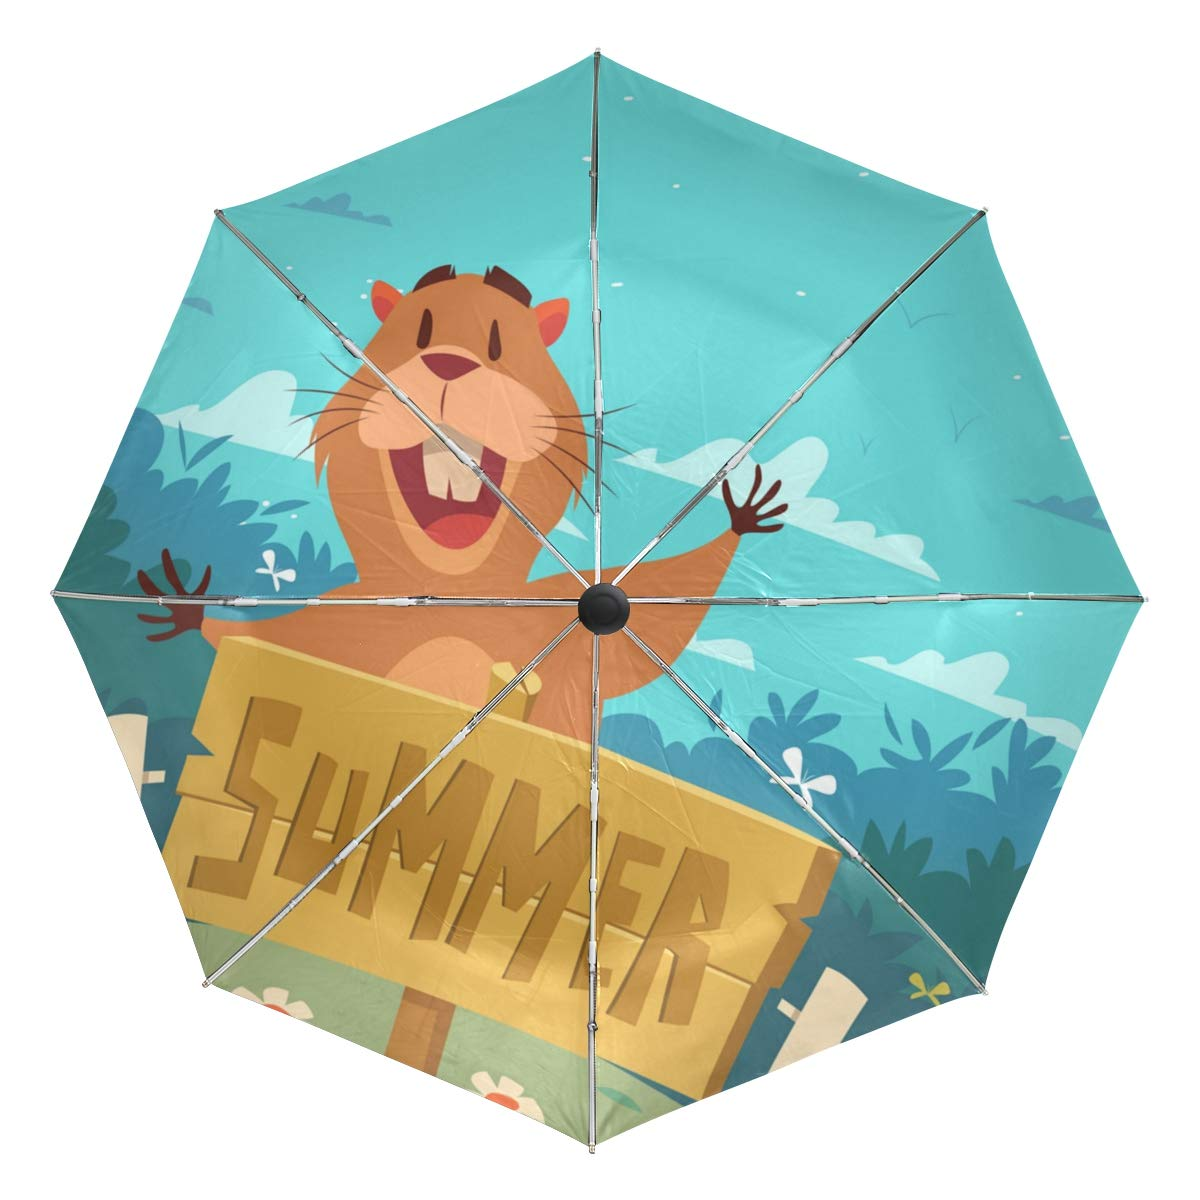 ANINILY Gopher With Summer Sign Folding Umbrella Windproof, Black Glue Anti UV Coating, Compact Travel Umbrella for women men, Auto Open Close